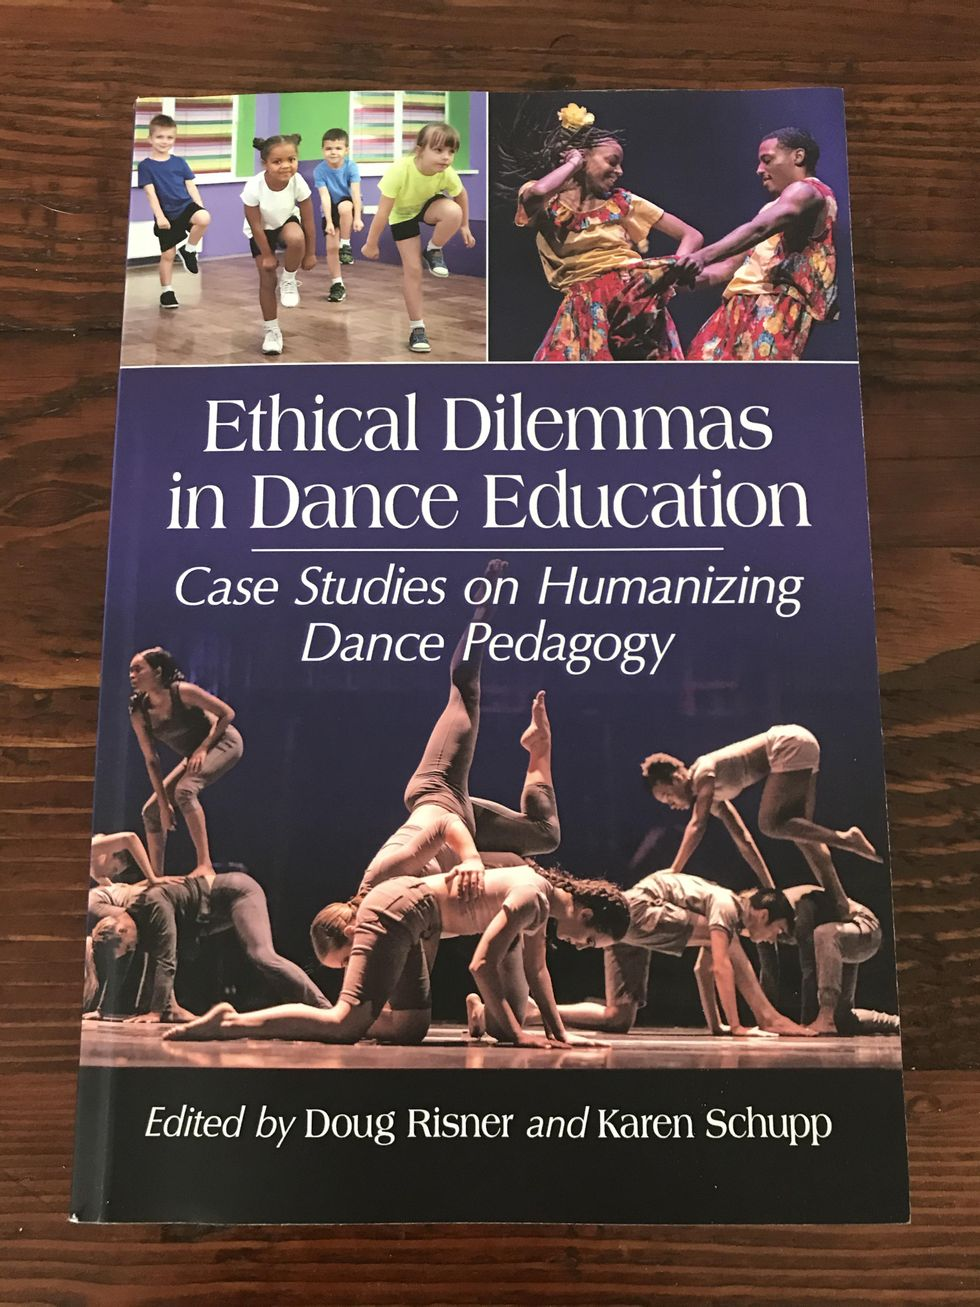 Ethical Dilemmas in Dance Education lays flat on a wooden table. It has three images of dance of different styles, and large white text